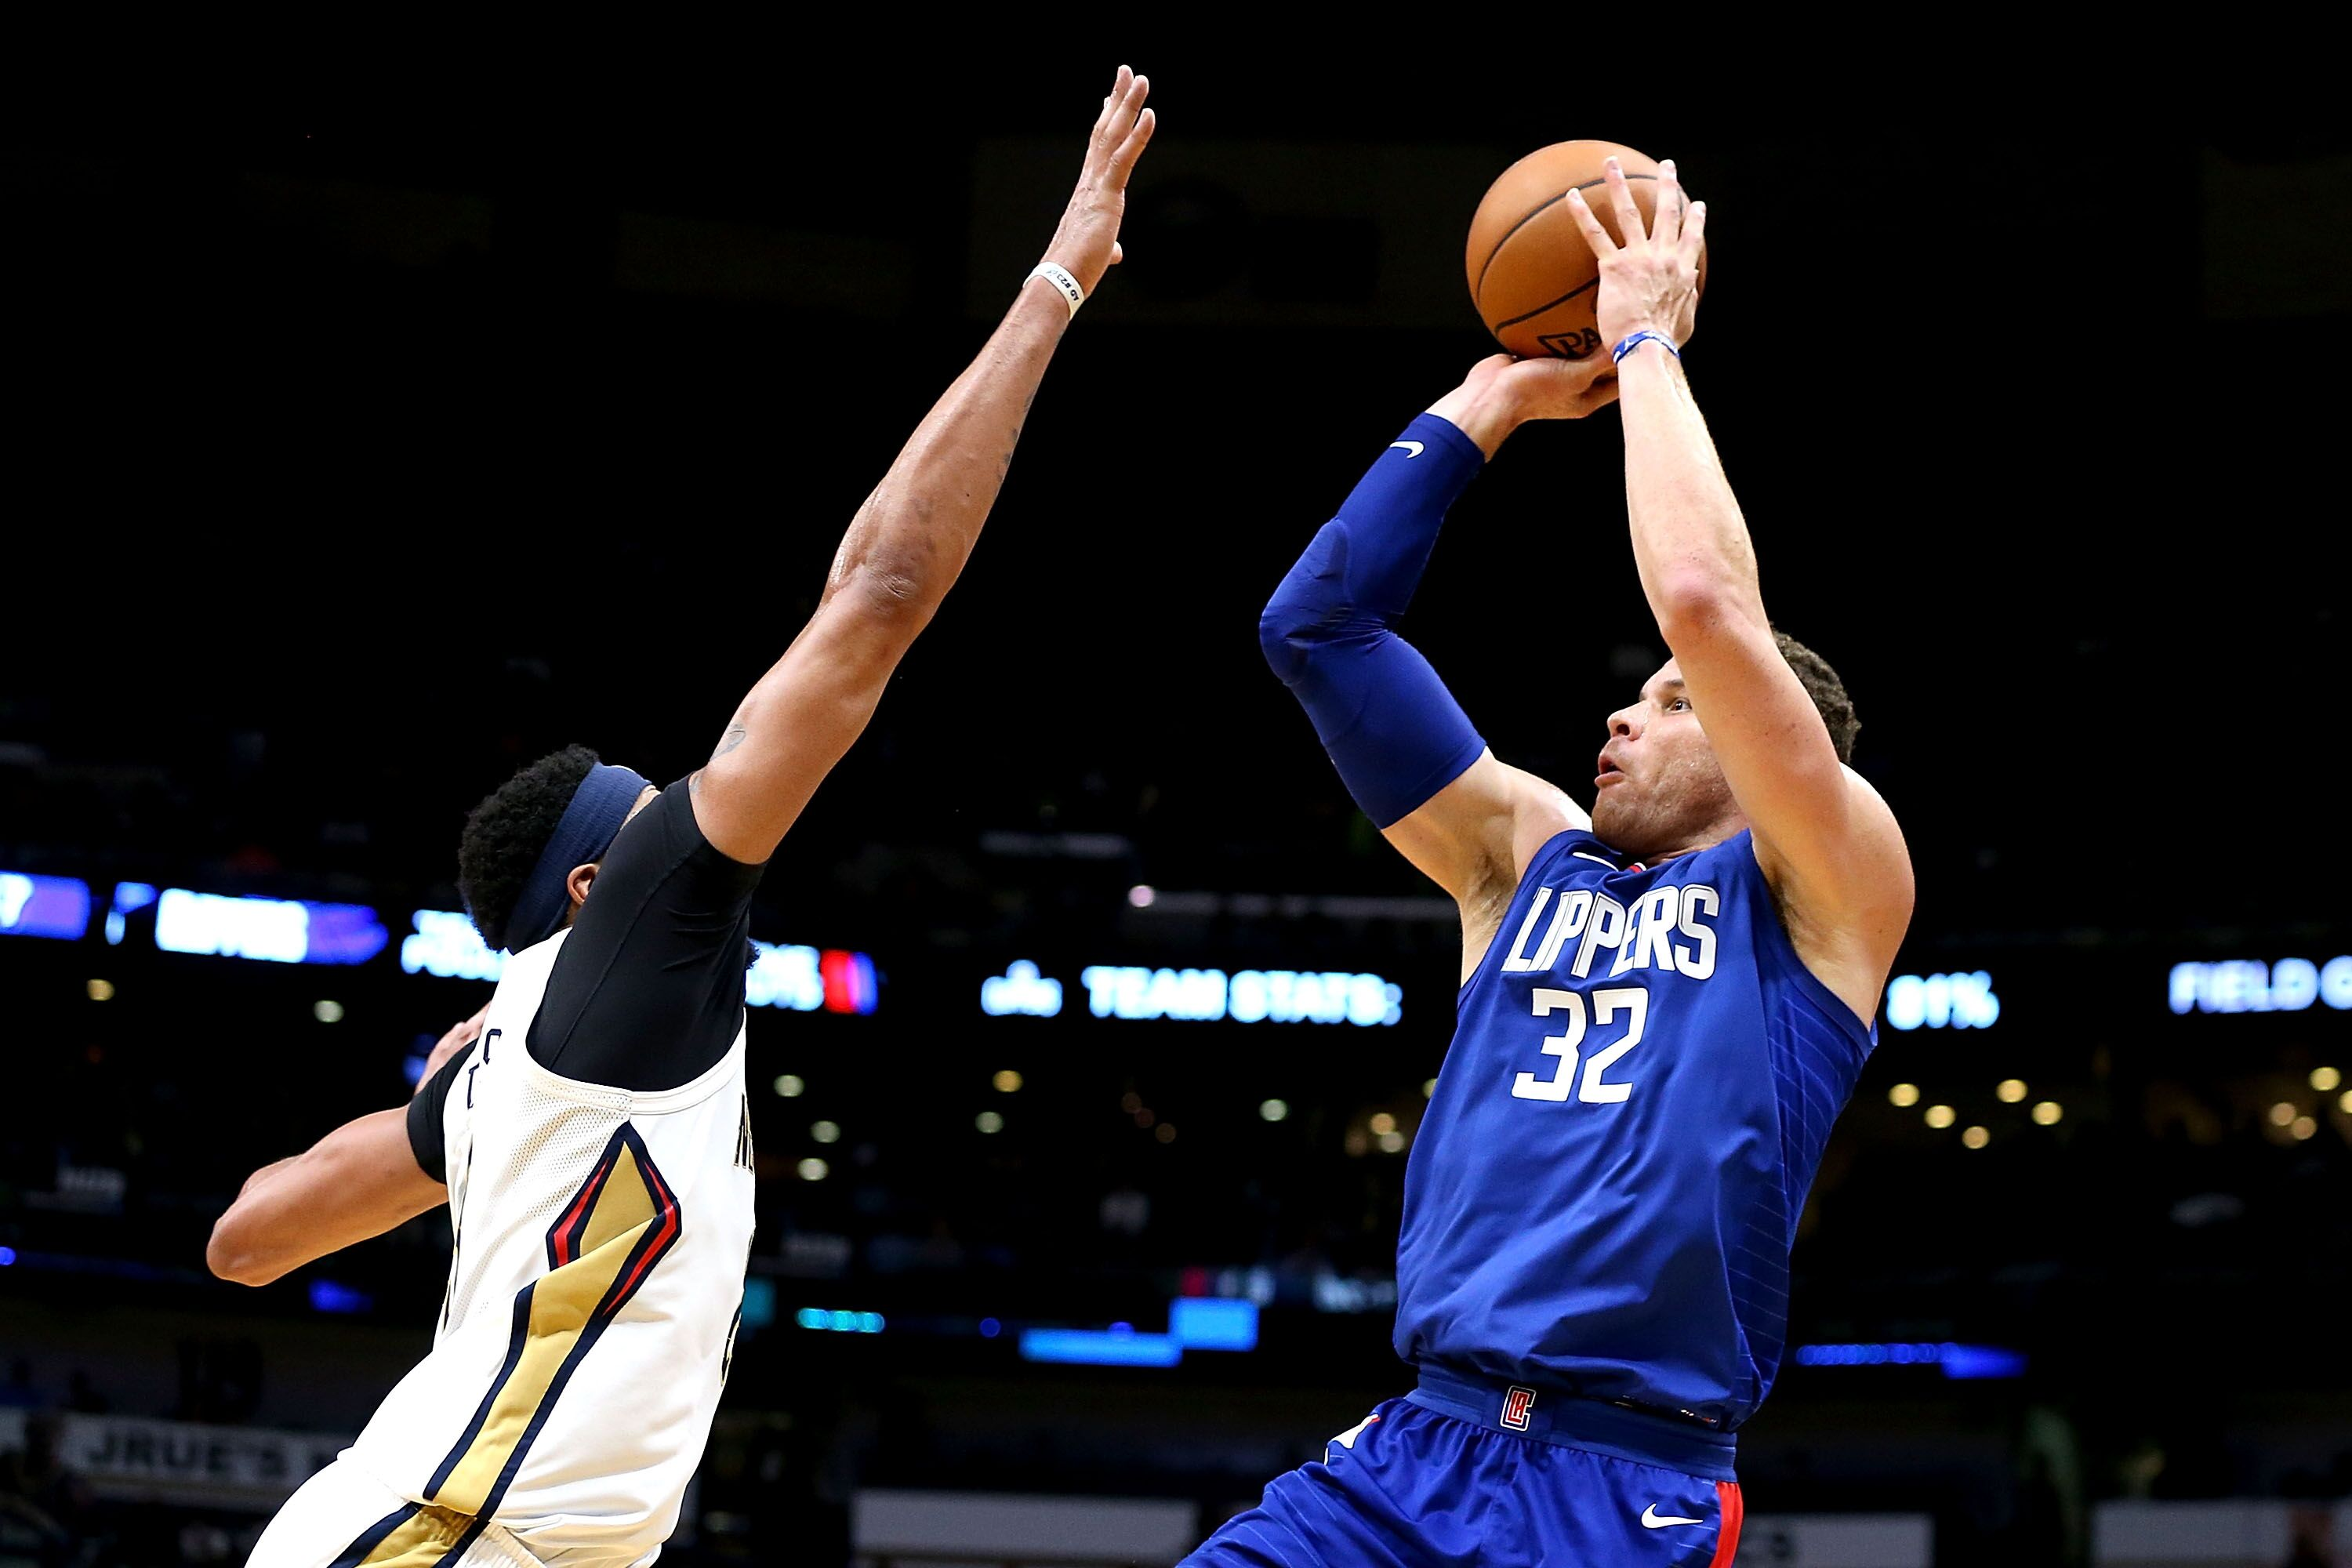 873052662-los-angeles-clippers-v-new-orleans-pelicans.jpg